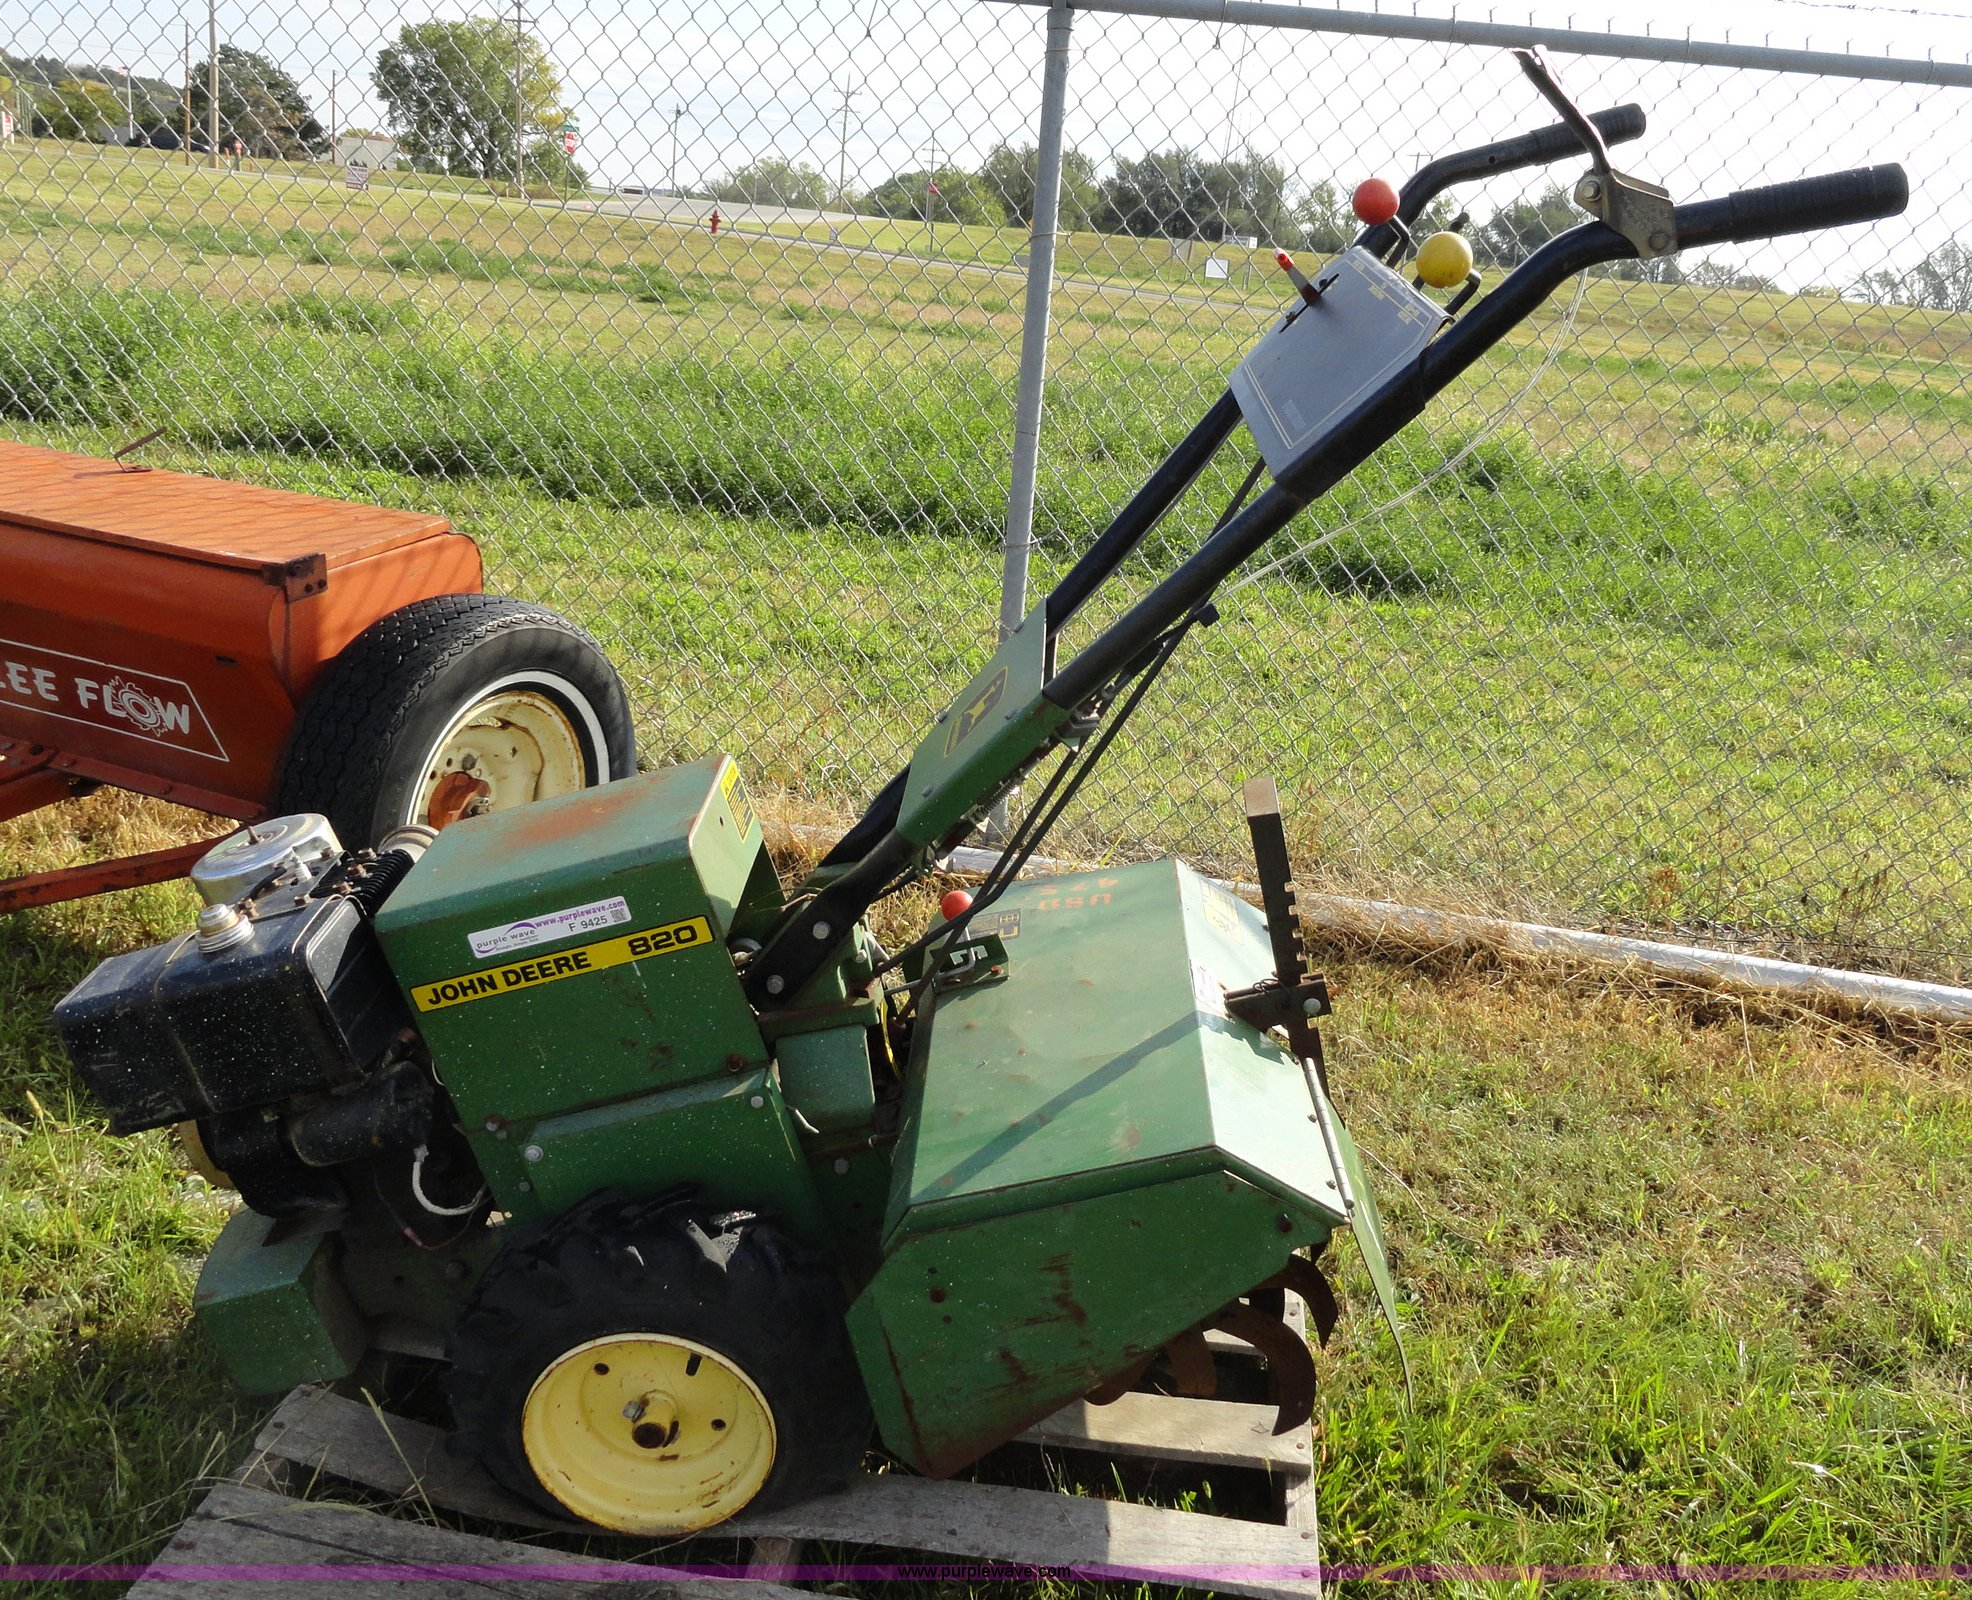 john new lawn mower rear deere item with sale in full size tiller window garden auction sol for